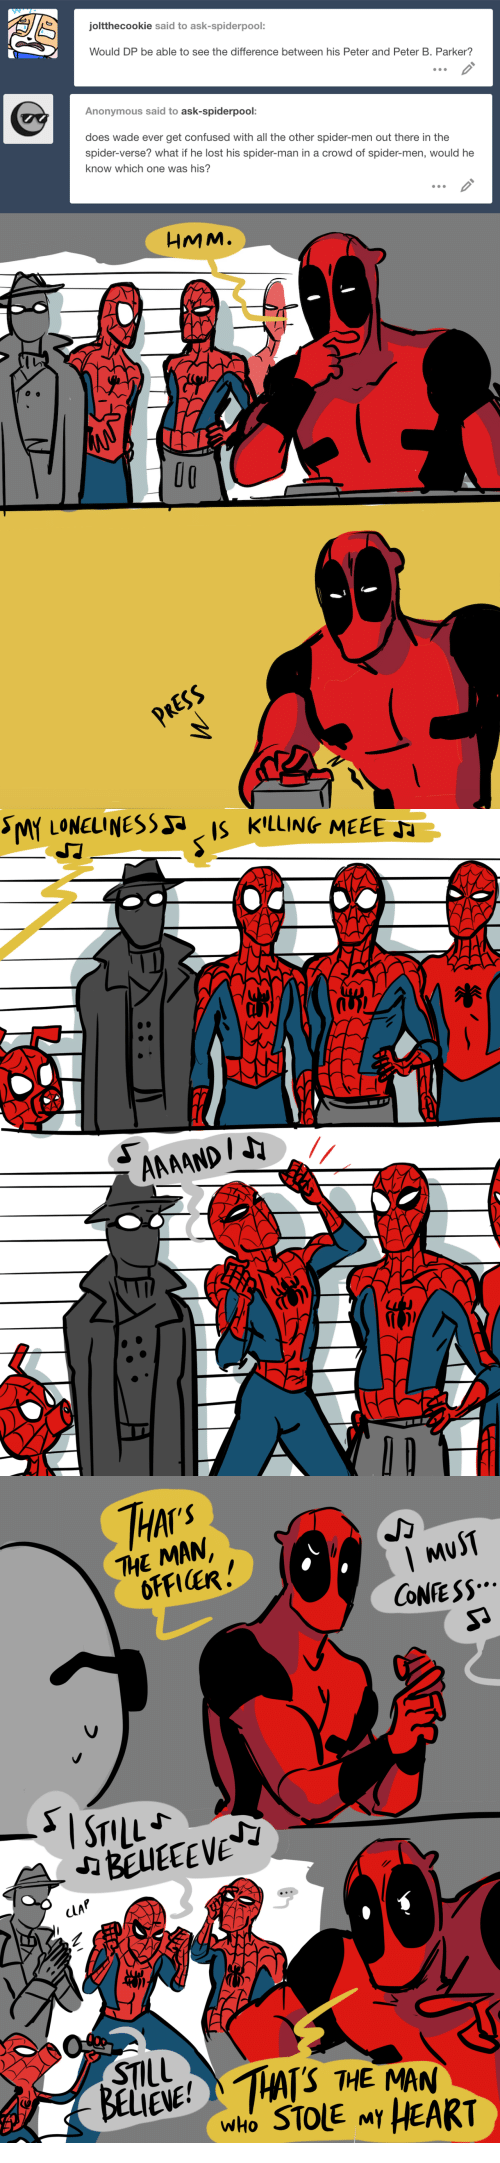 Confused, Spider, and SpiderMan: joltthecookie said to ask-spiderpool:  Would DP be able to see the difference between his Peter and Peter B. Parker?  Anonymous said to ask-spiderpool:  does wade ever get confused with all the other spider-men out there in the  spider-verse? what if he lost his spider-man in a crowd of spider-men, would he  know which one was his?  HMM.  O0  RESS   THAI  THE MAN  MuST  CONE SS  CLAP  STIL  BELIENE!HAS THE MAN  who STOLE MY HEART